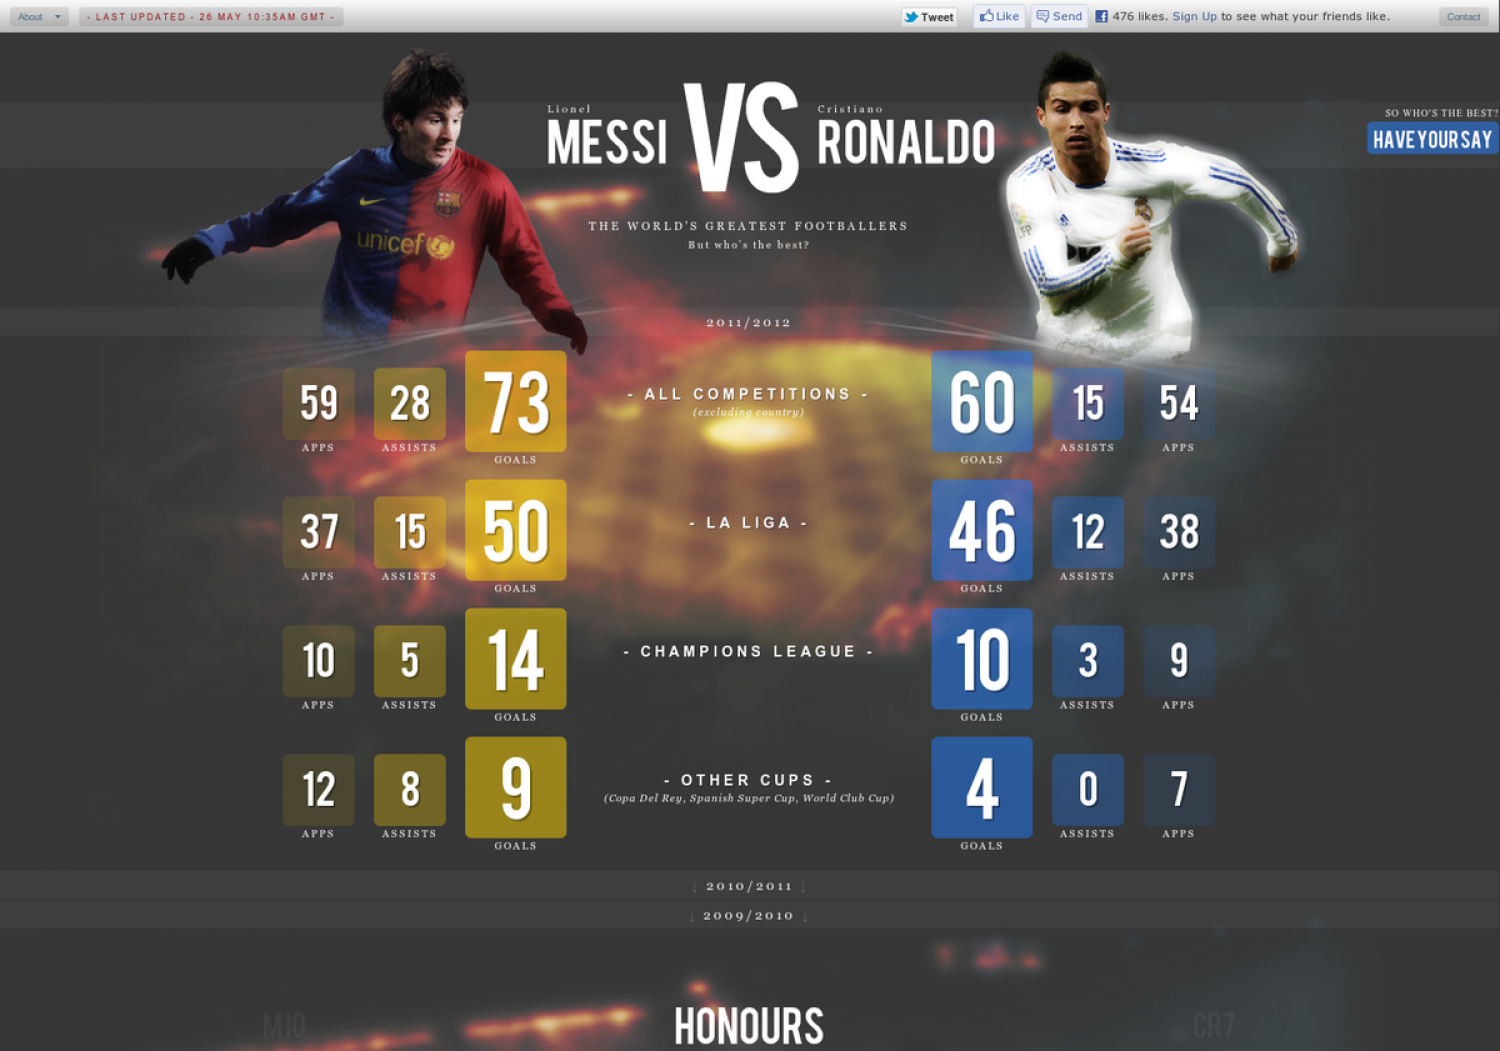 Messi Vs Ronaldo InfographicMessi Vs Ronaldo